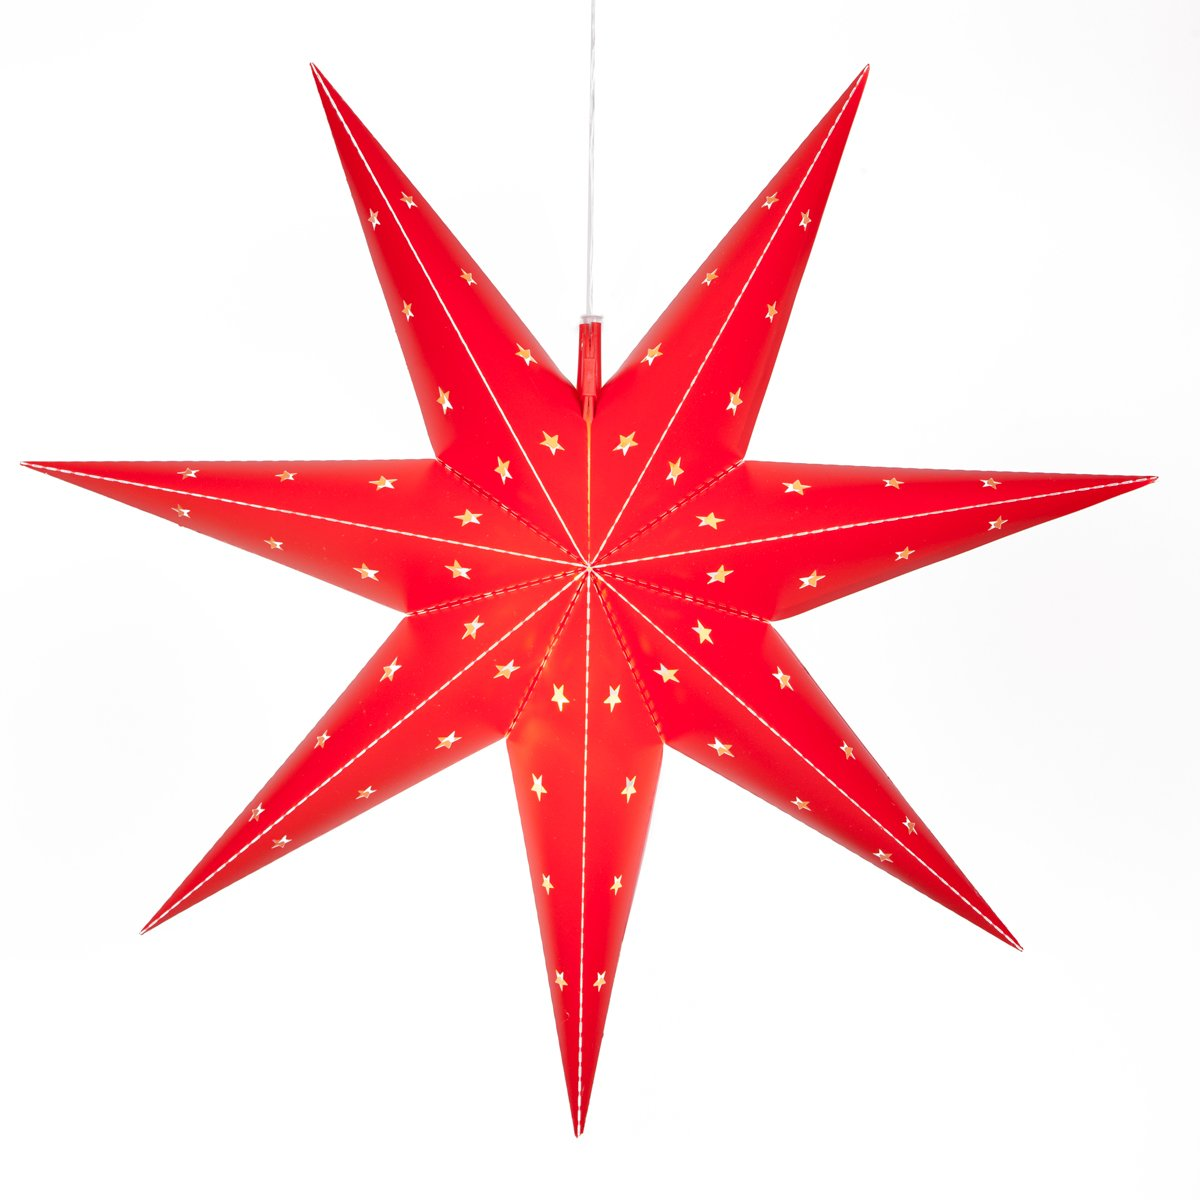 Wintergreen Lighting Fold-Flat 7-Point Star Light - Hanging Star - Christmas Star Light Decoration/Battery-Powered with Timer (24'', Red)